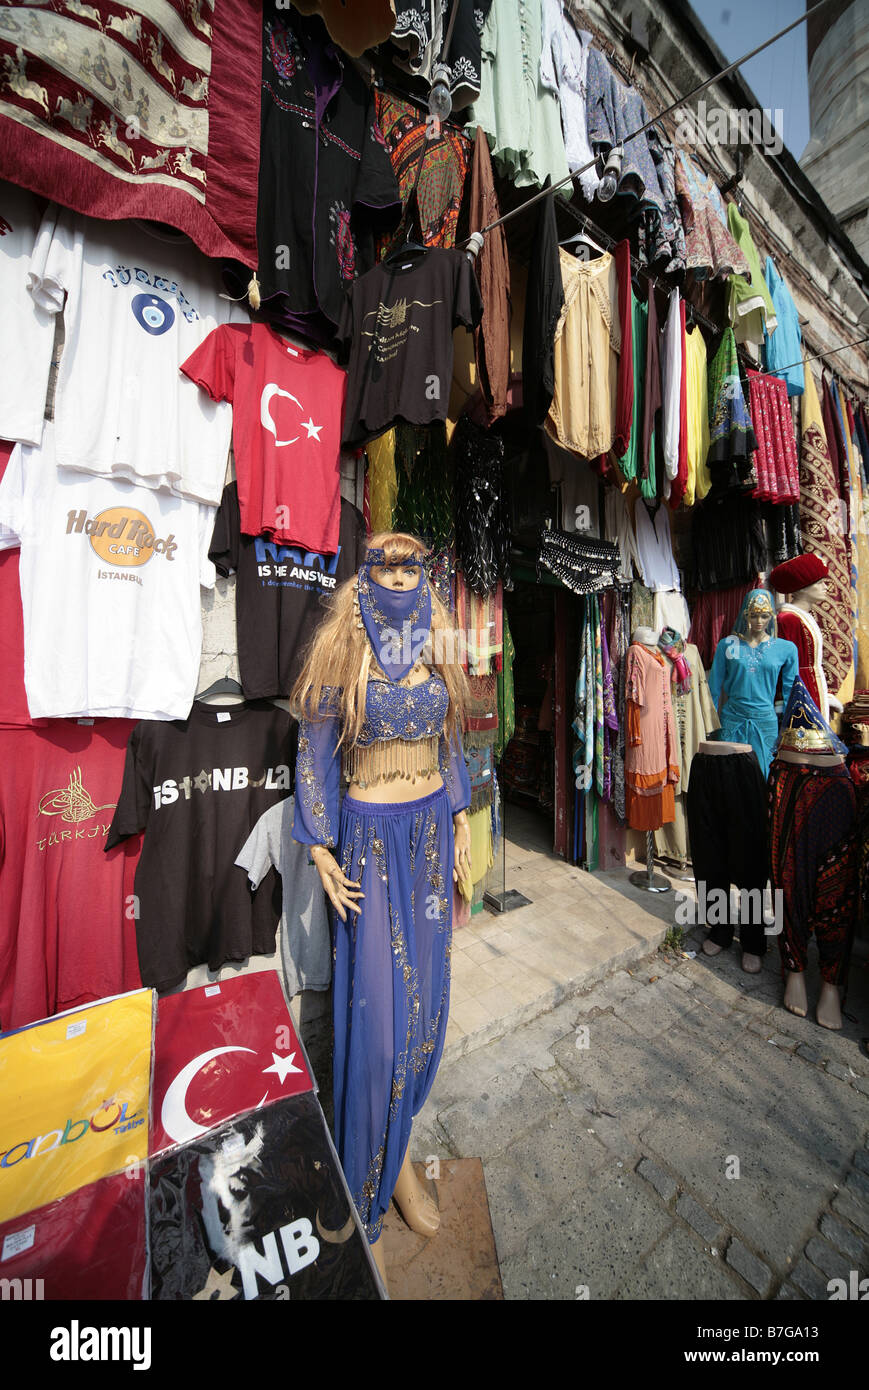 MANNEQUIN AT CLOTHS STALL ISTANBUL TURKEY SULTANAHMET ISTANBUL TURKEY 04 April 2008 - Stock Image